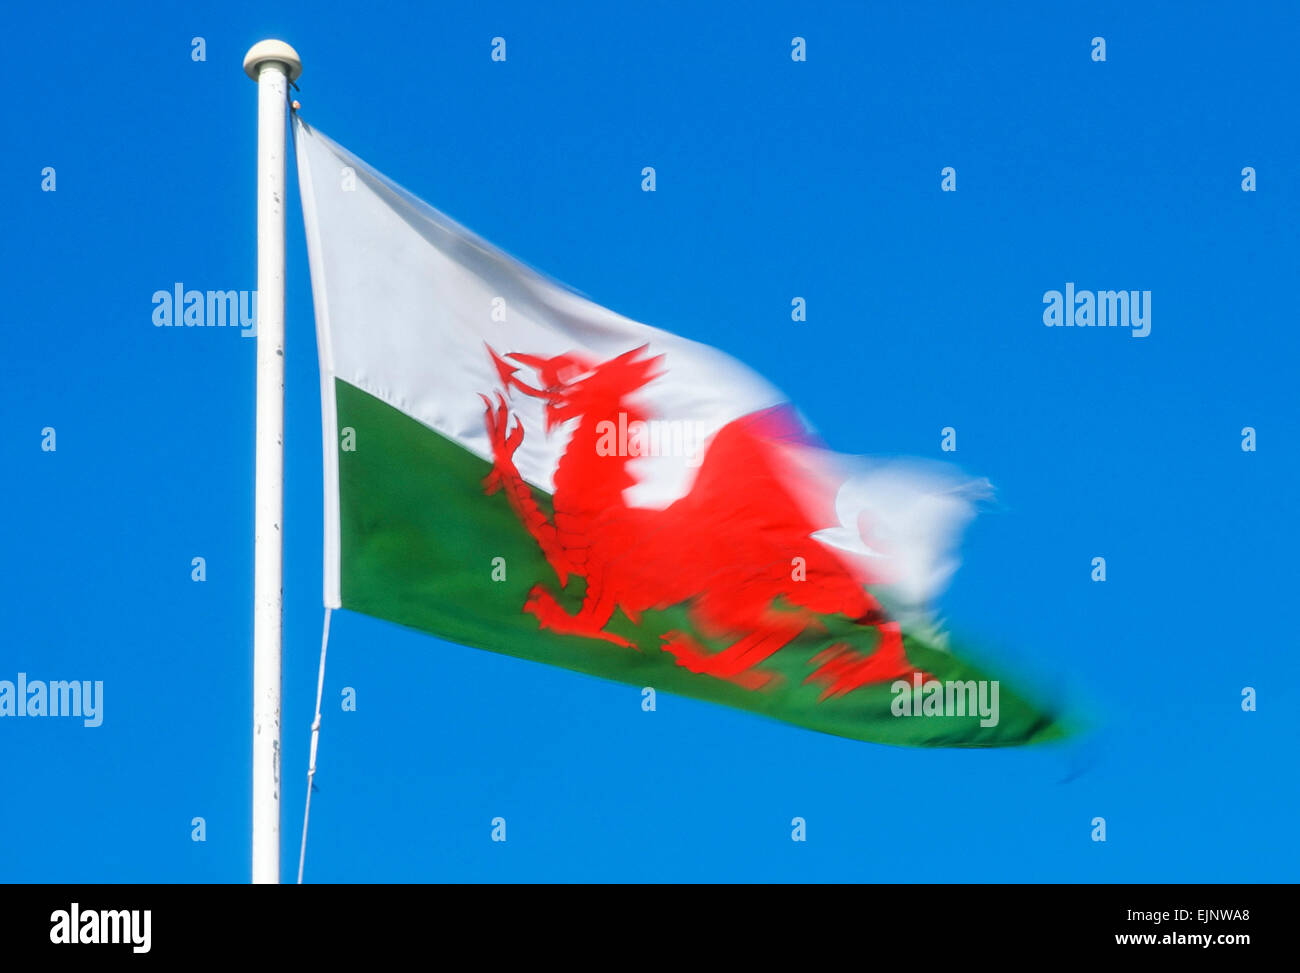 Welsh Flag blowing in the wind on blue sky background, Cardiff, Wales, UK, GB EU, Europe - Stock Image